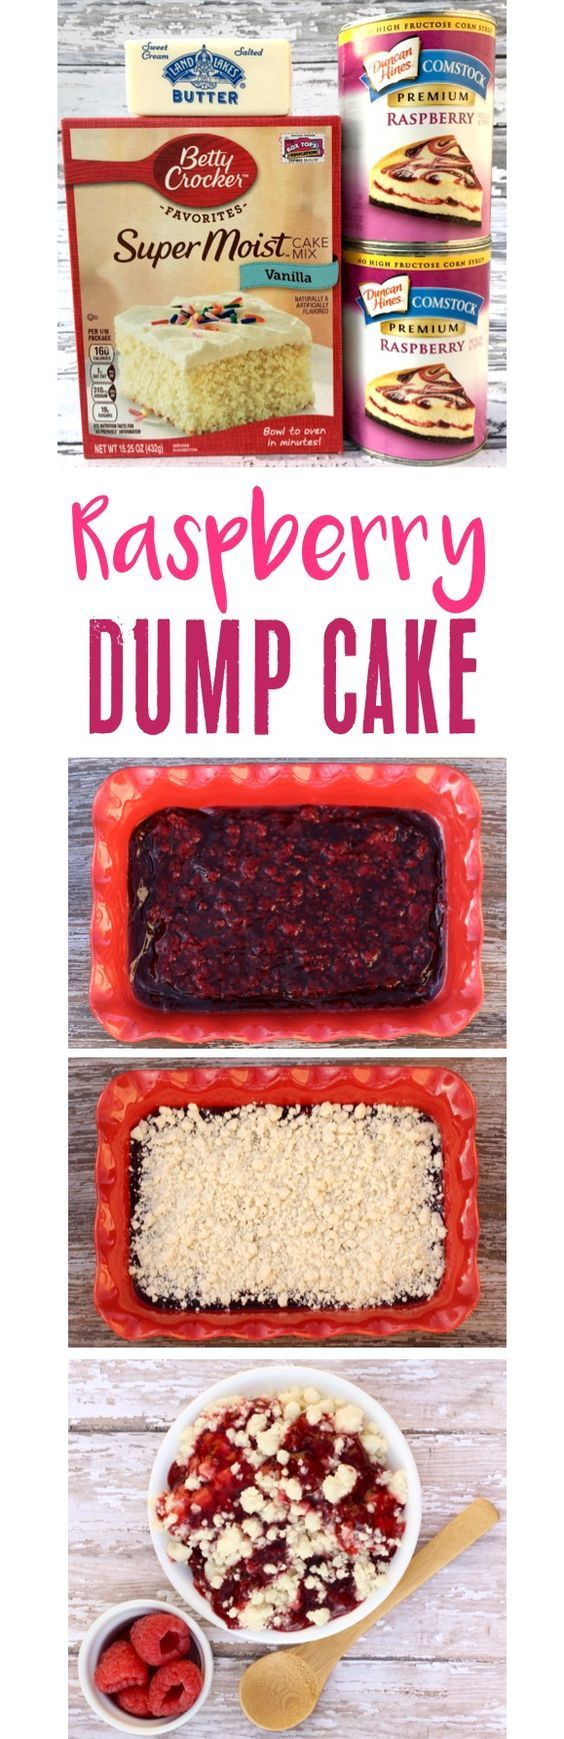 Raspberry Dump Cake Recipe!  Just 3 ingredients and you've got the most delicious EASY dessert! | TheFrugalGirls.com